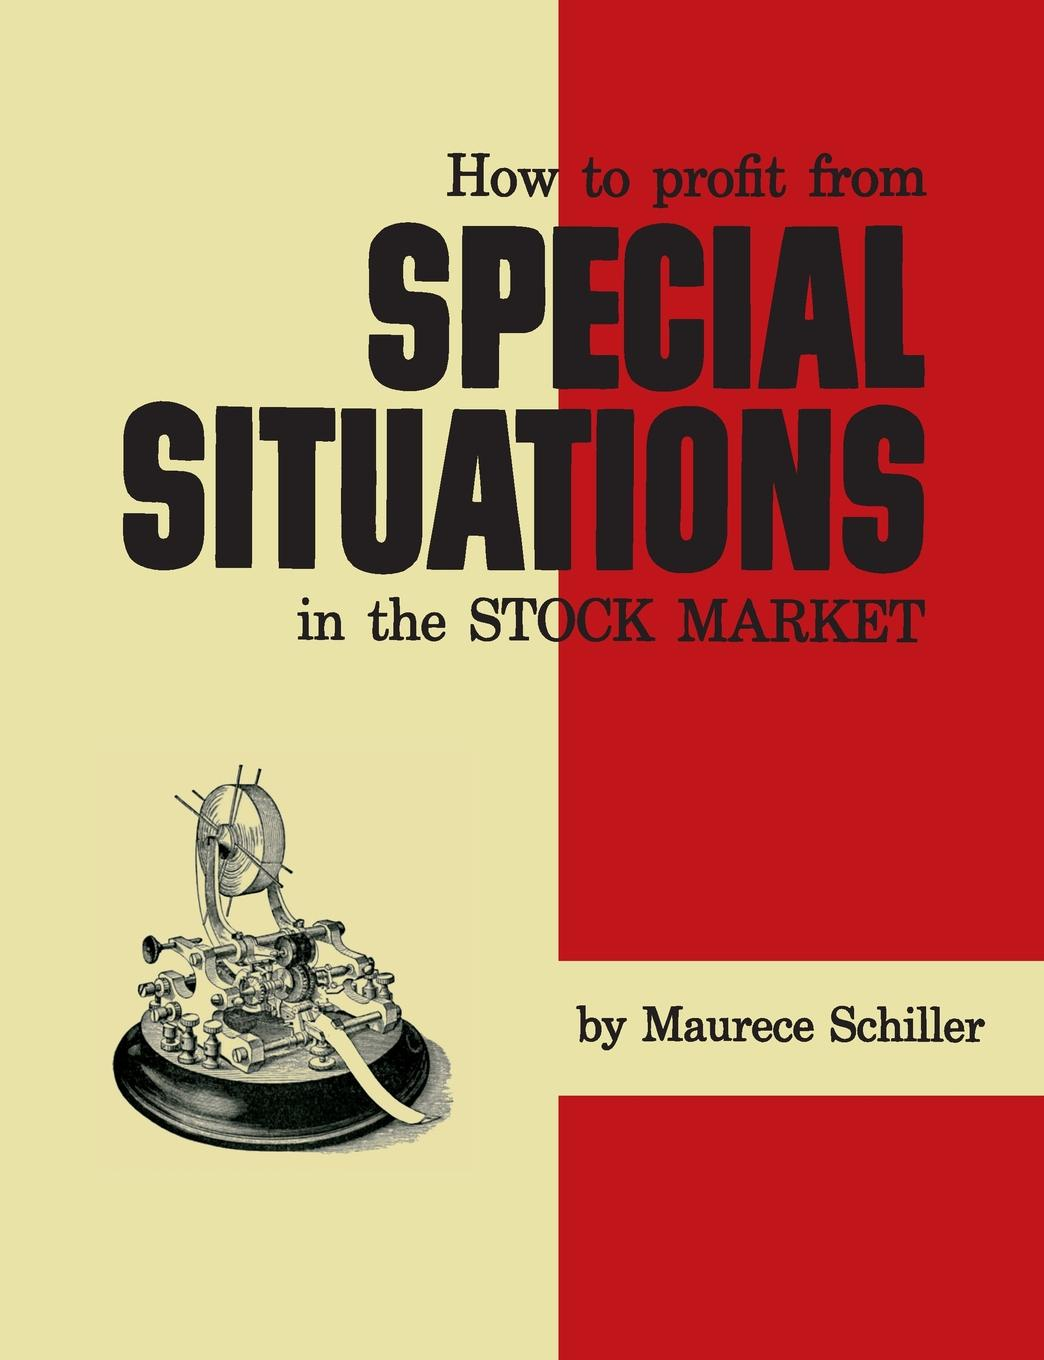 Maurece Schiller How to Profit From Special Situations in the Stock Market